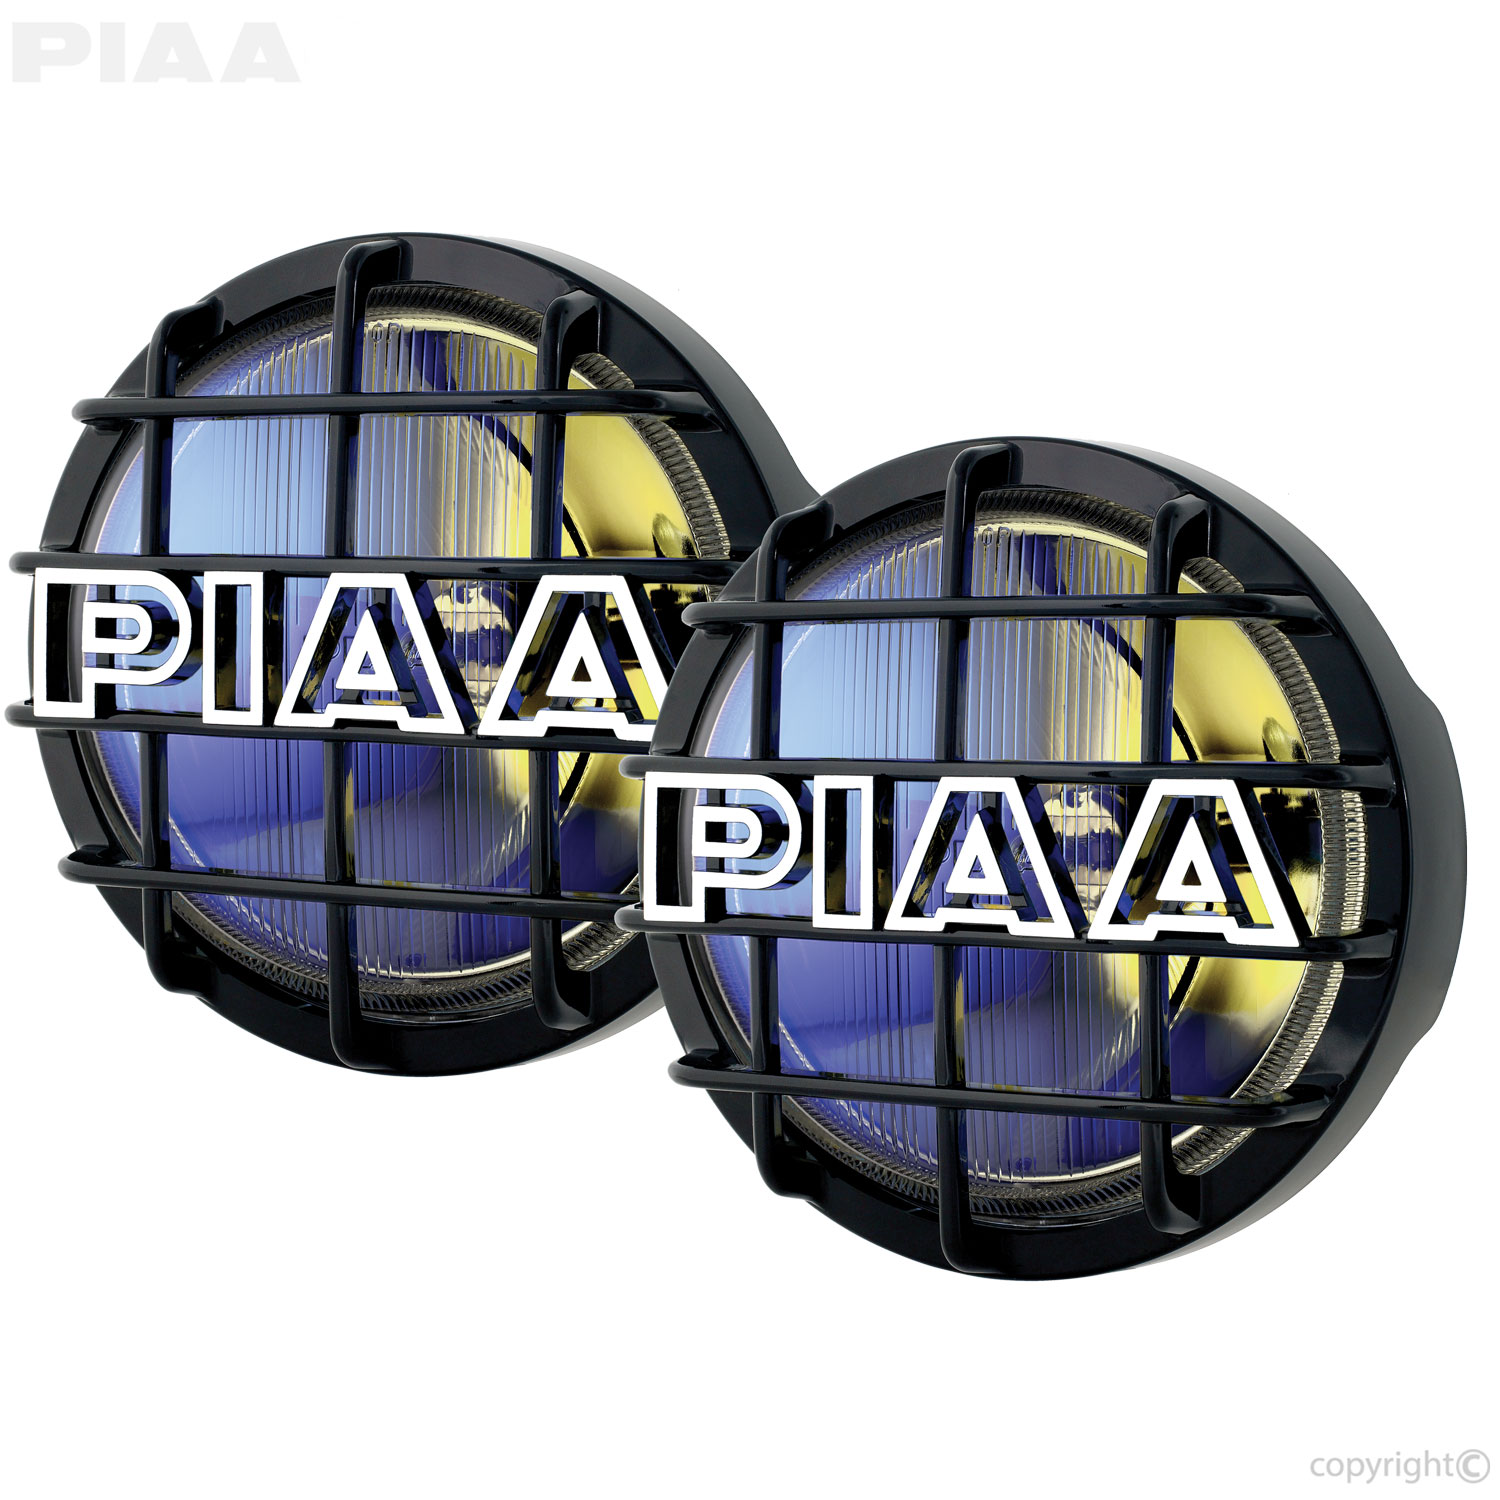 piaa 05293 520 dual hr?bw=1000&w=1000&bh=1000&h=1000 piaa 520 ion yellow driving halogen lamp kit 5293 Chevy Wiring Harness at eliteediting.co